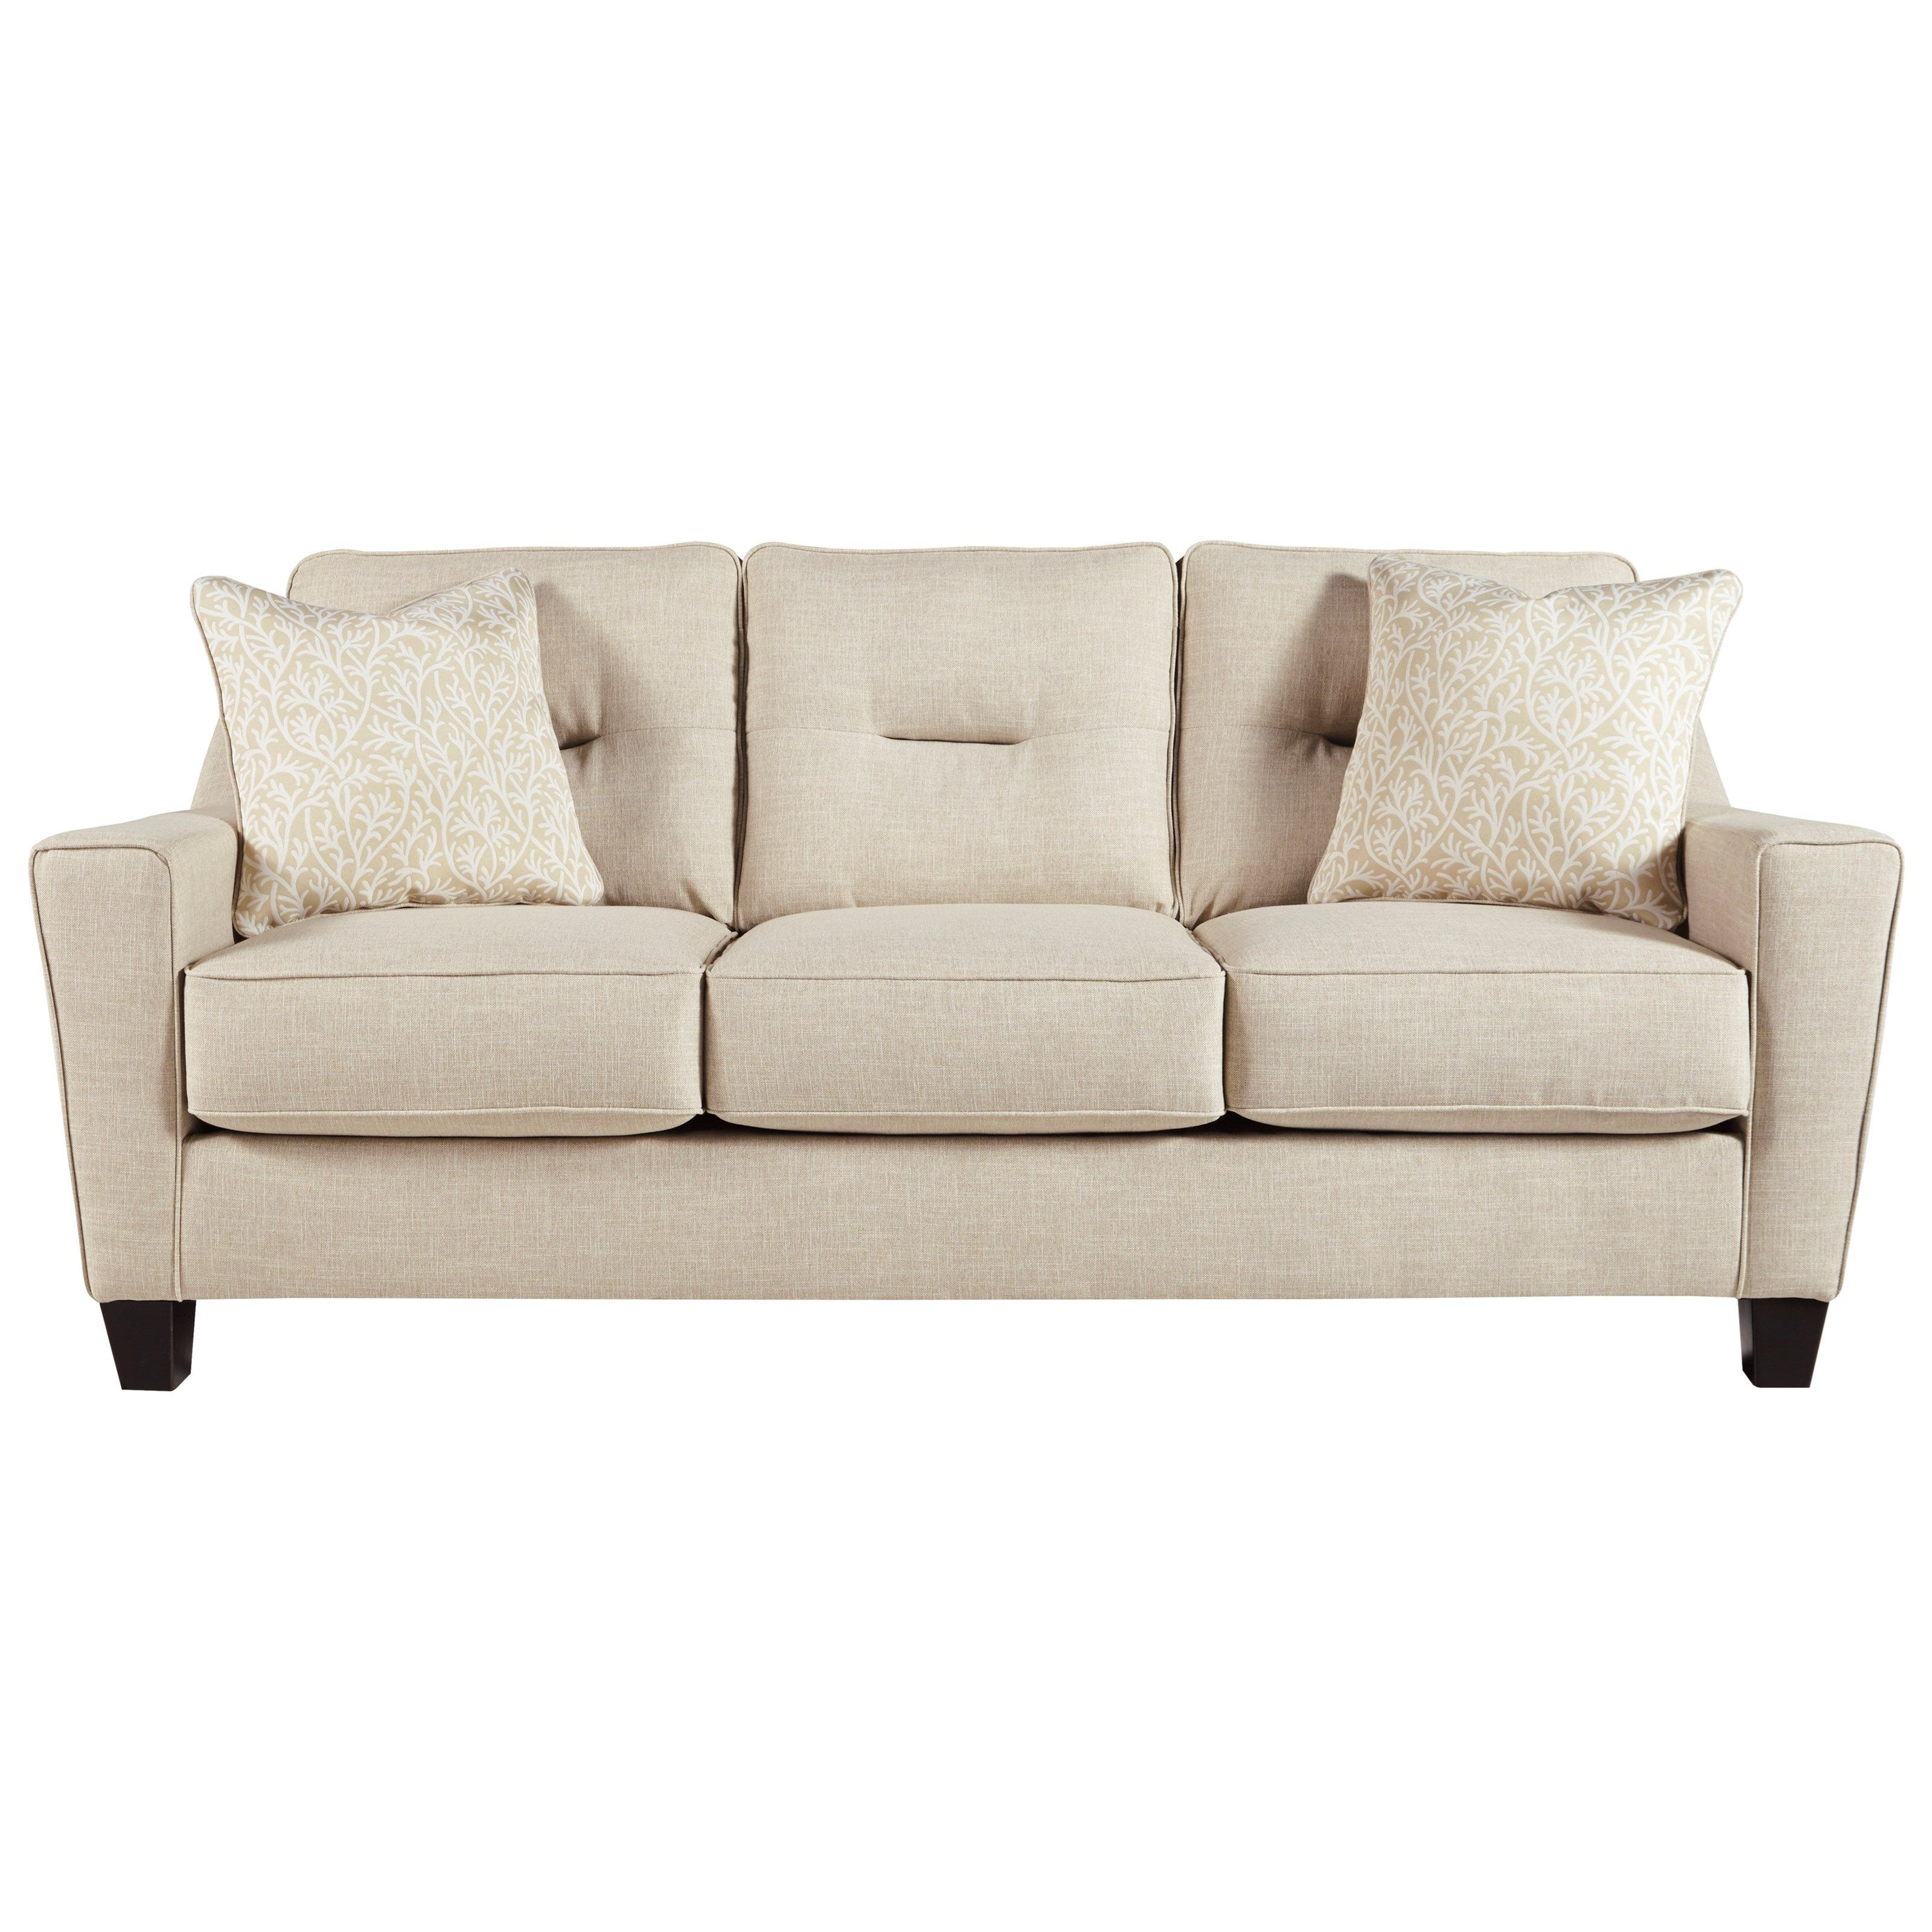 Best Forsan Nuvella Sofa By Benchcraft At Hudson S Furniture 640 x 480